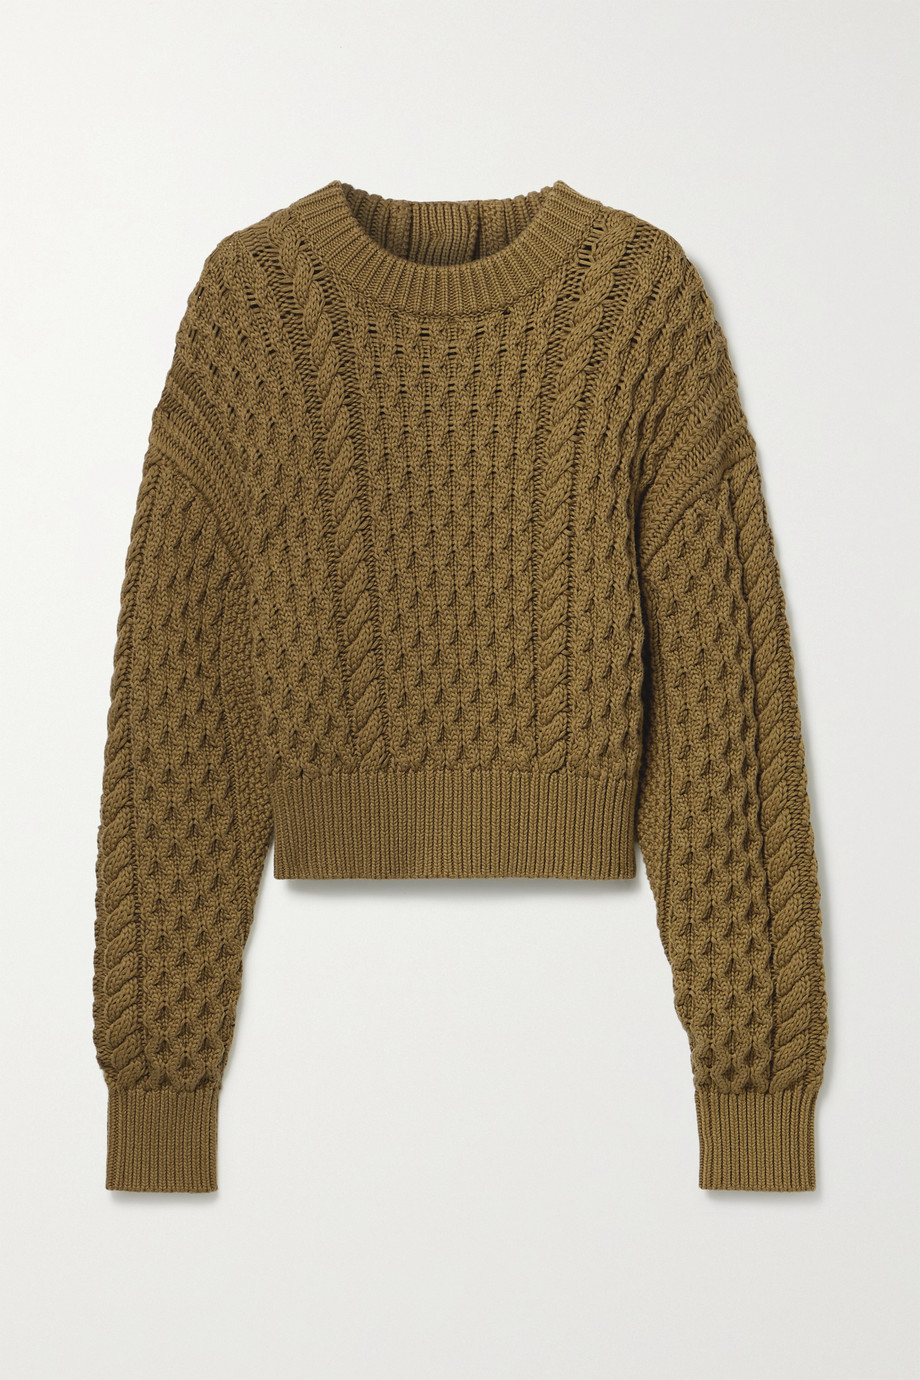 PROENZA SCHOULER WHITE LABEL Button-detailed cable-knit wool and cotton-blend sweater